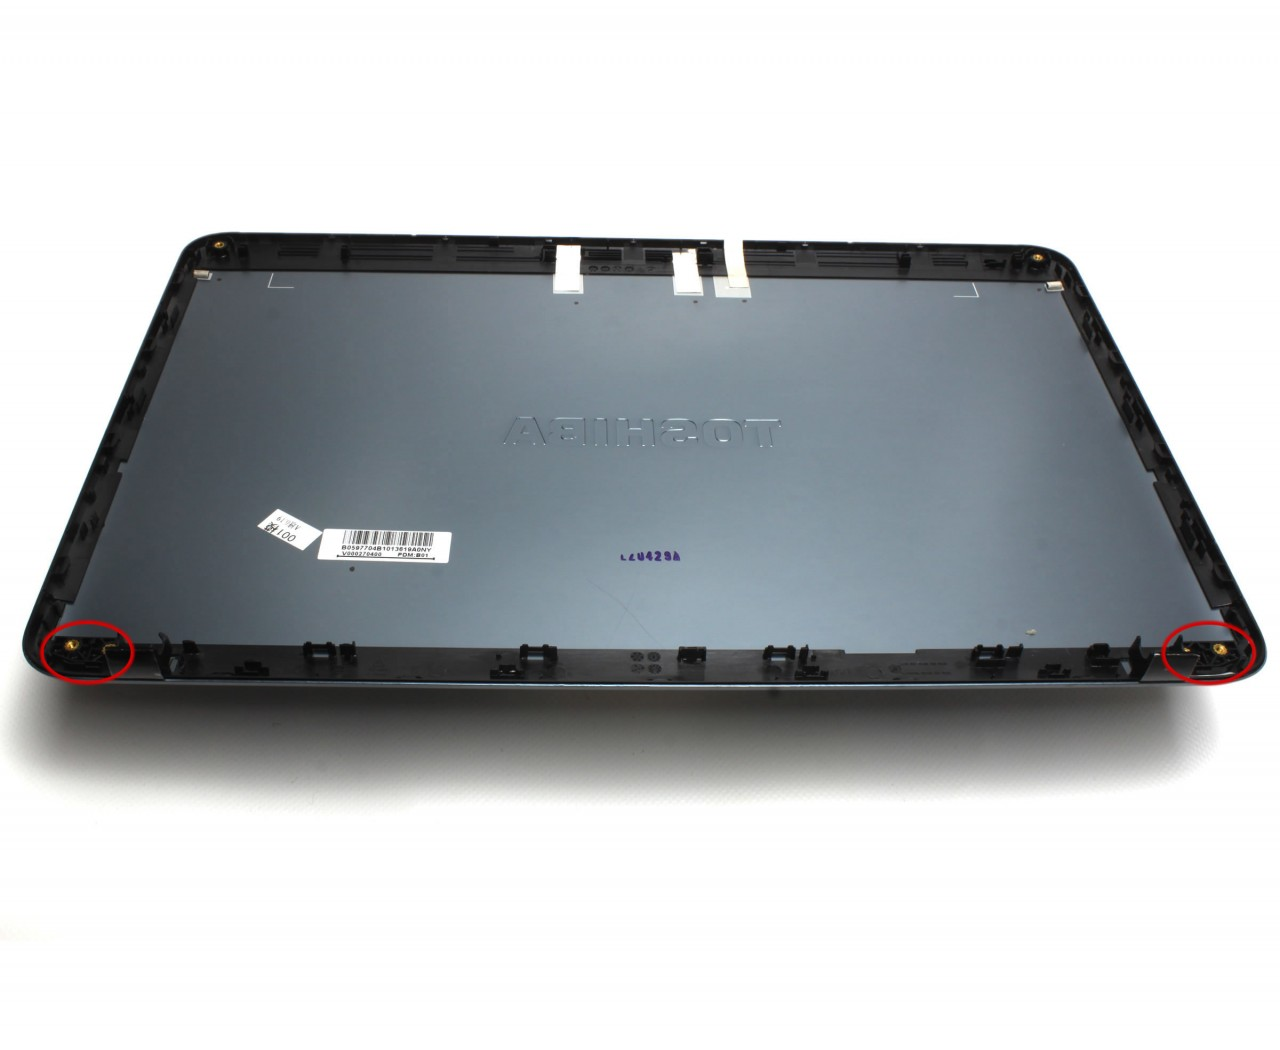 Capac Display BackCover Toshiba V000270490 Carcasa Display Gri cu 2 Suruburi Balamale imagine powerlaptop.ro 2021